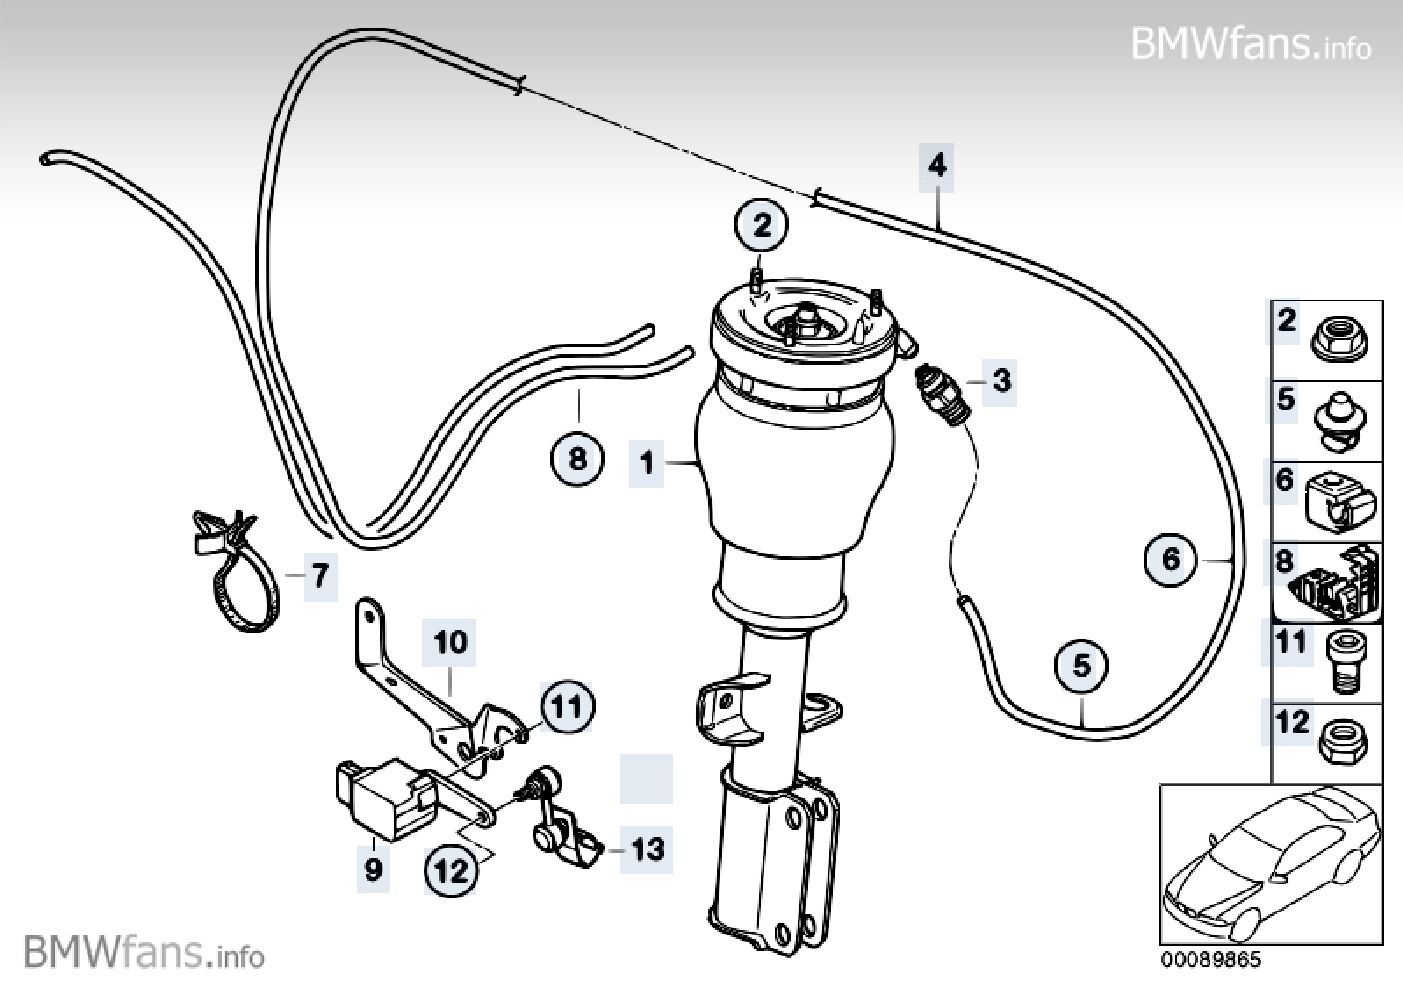 Bmw X5 Suspension Diagram Wiring Schematic 2019 Engine F 22 Free Image For Air 2001